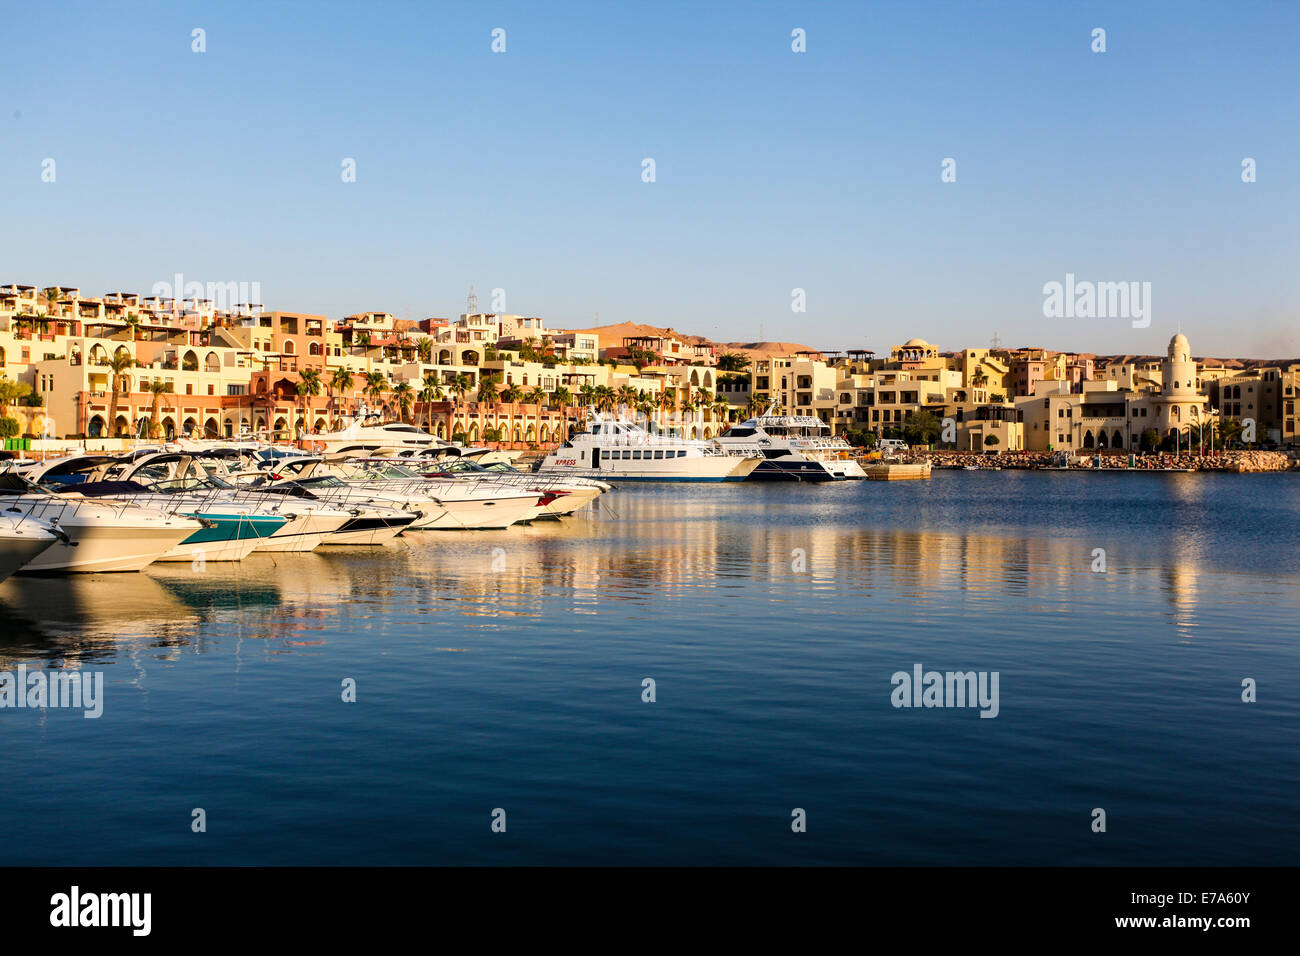 Tala Bay, Aqaba, Jordan yacht club and marina - Stock Image